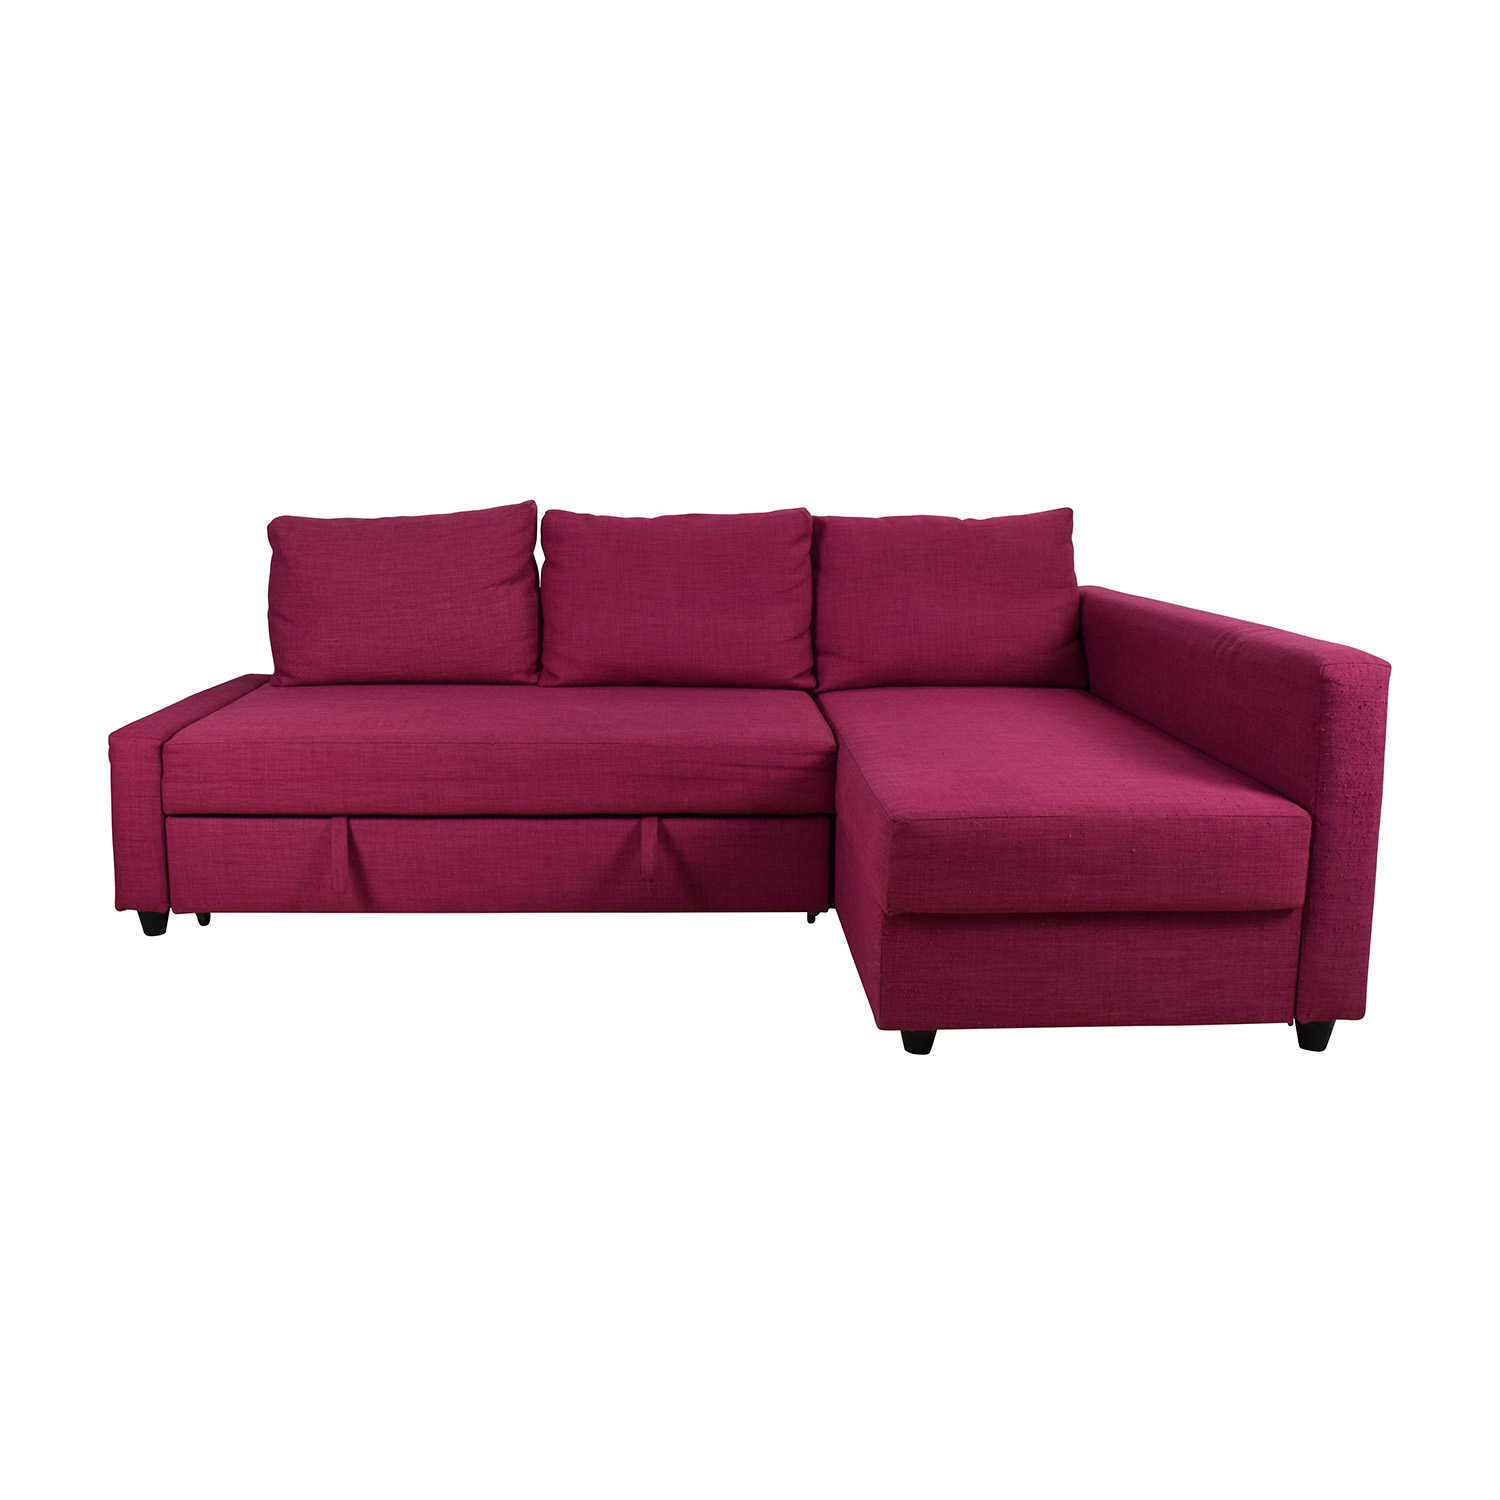 Sleeper sofas nj hereo sofa for Sectional sleeper sofa nj